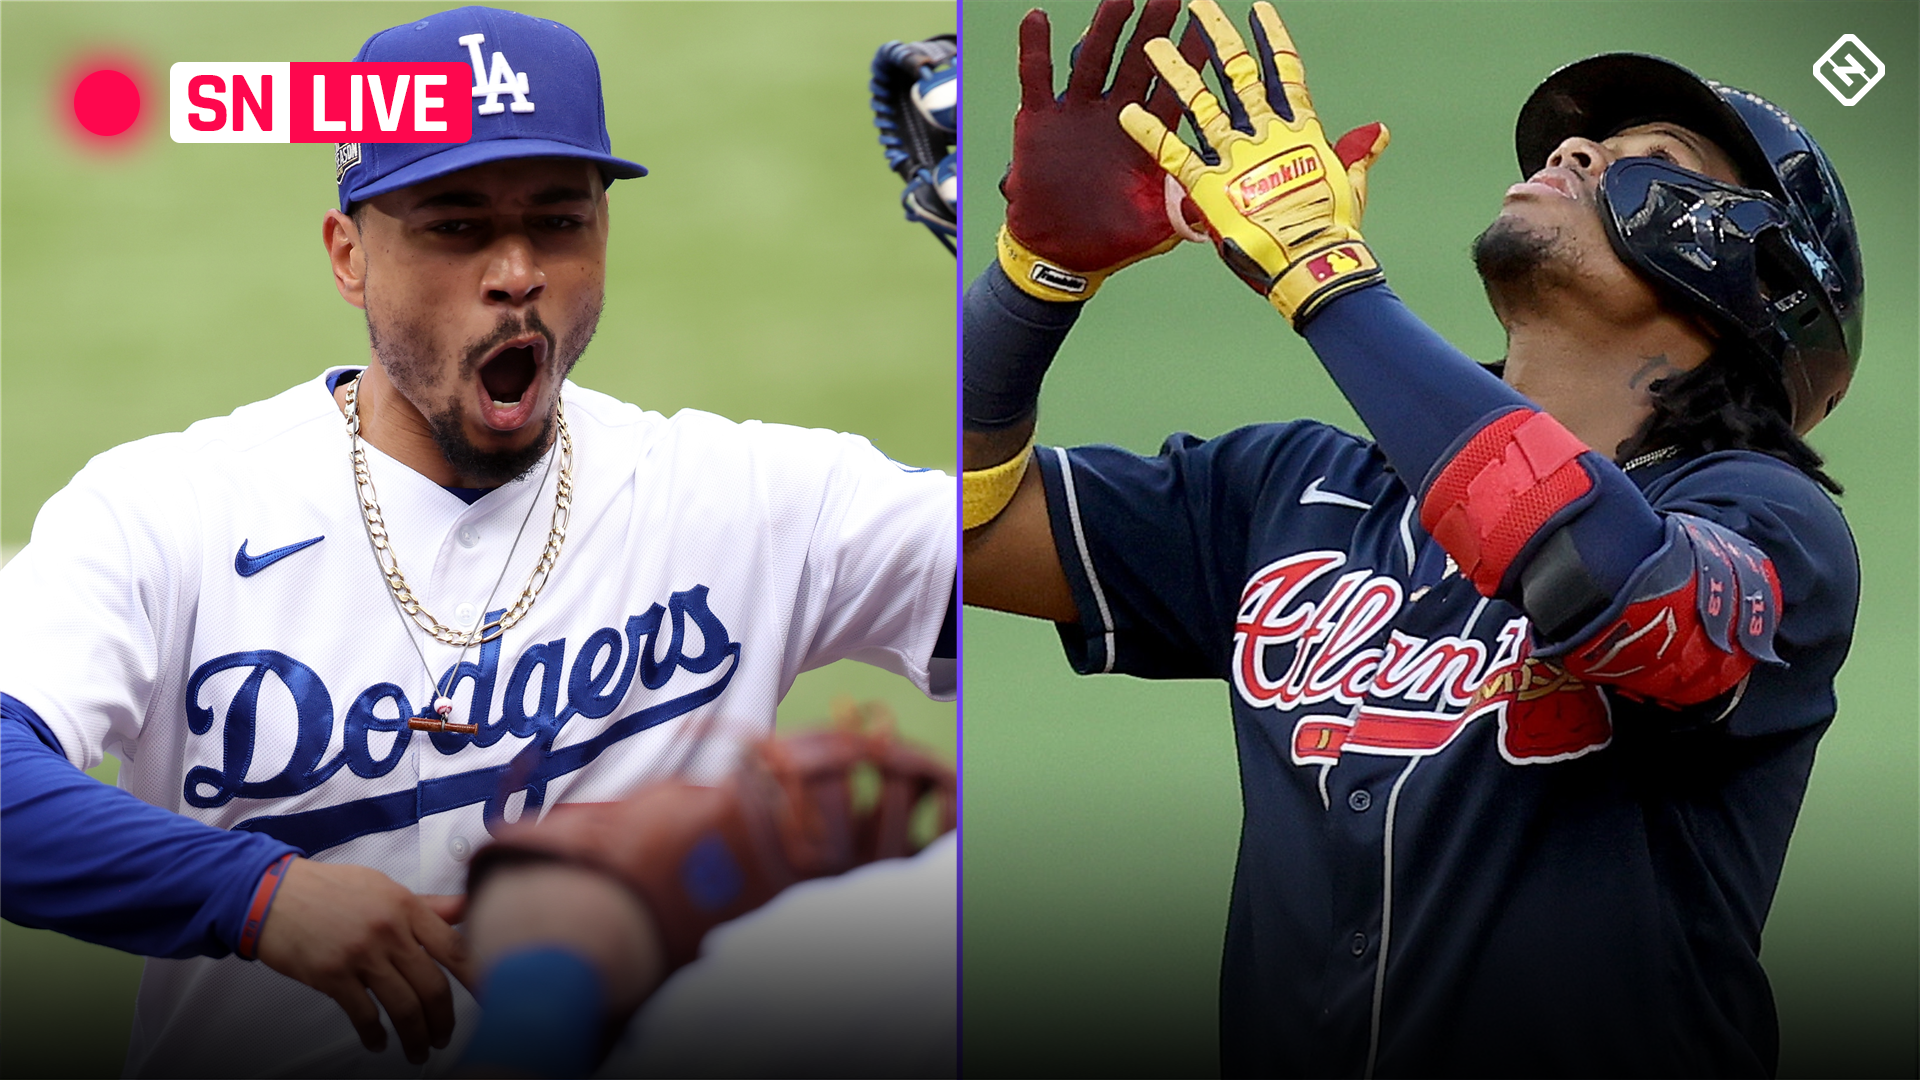 Dodgers vs. Braves live score, updates, highlights from Game 7 of the 2020 NLCS 1